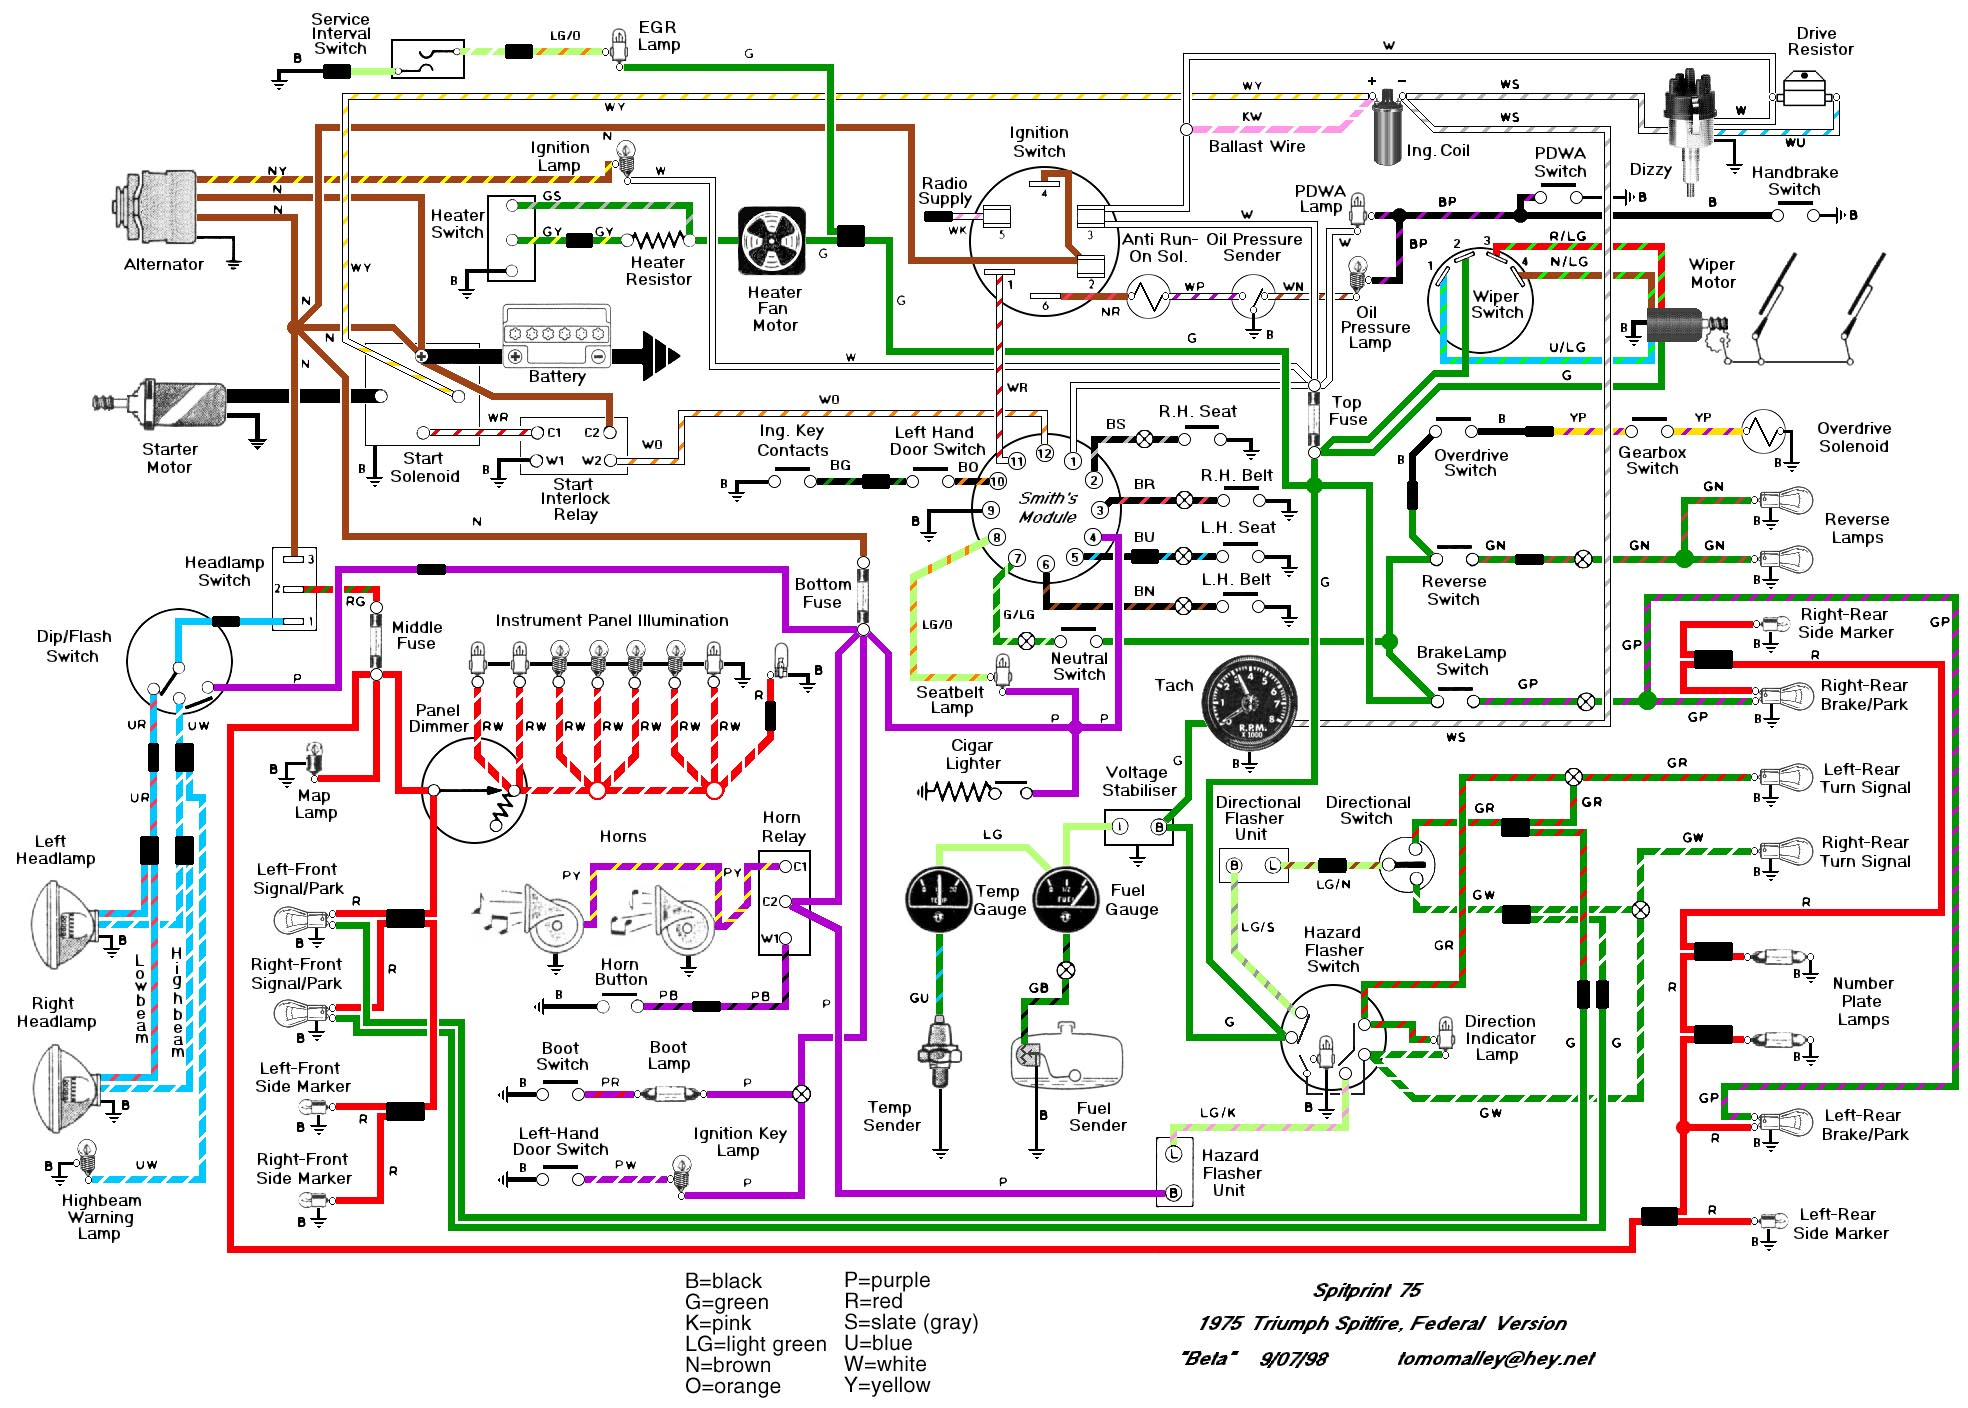 75diagram bmw mini wiring diagram gem e2 wiring diagrams \u2022 wiring diagrams 1975 impala wiring diagram at virtualis.co